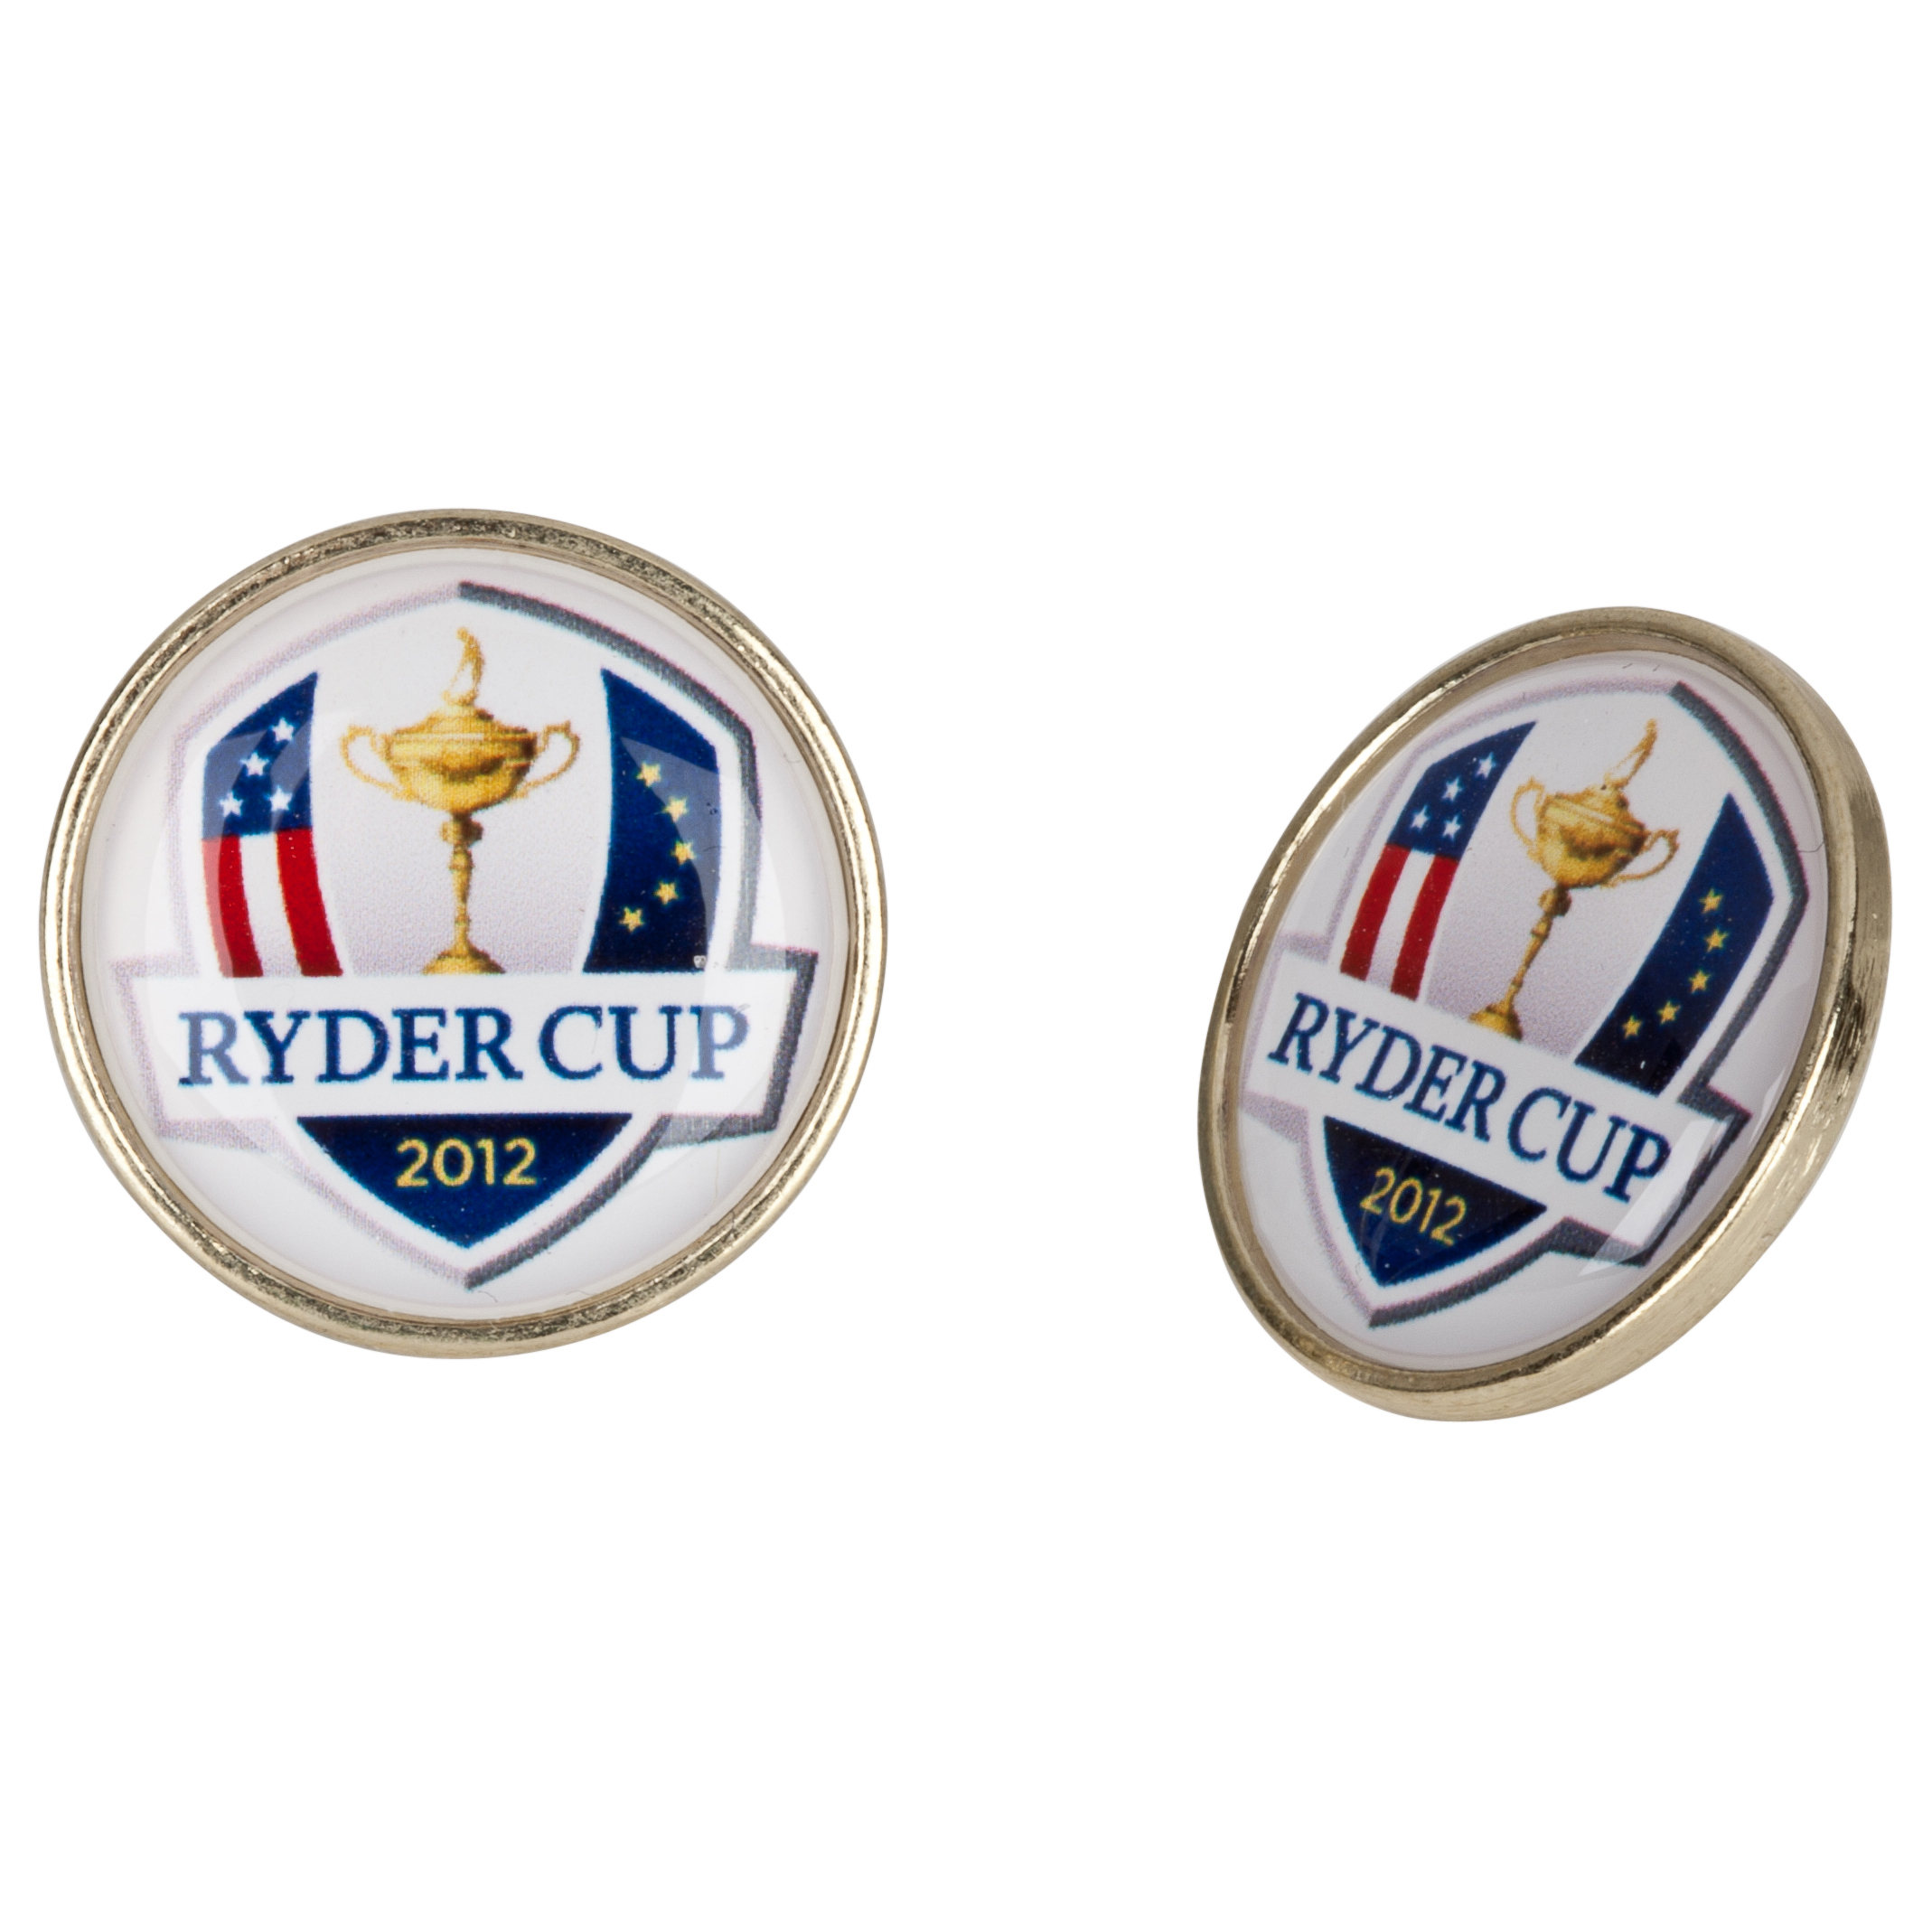 The Ryder Cup Medinah 2012 Ball Marker